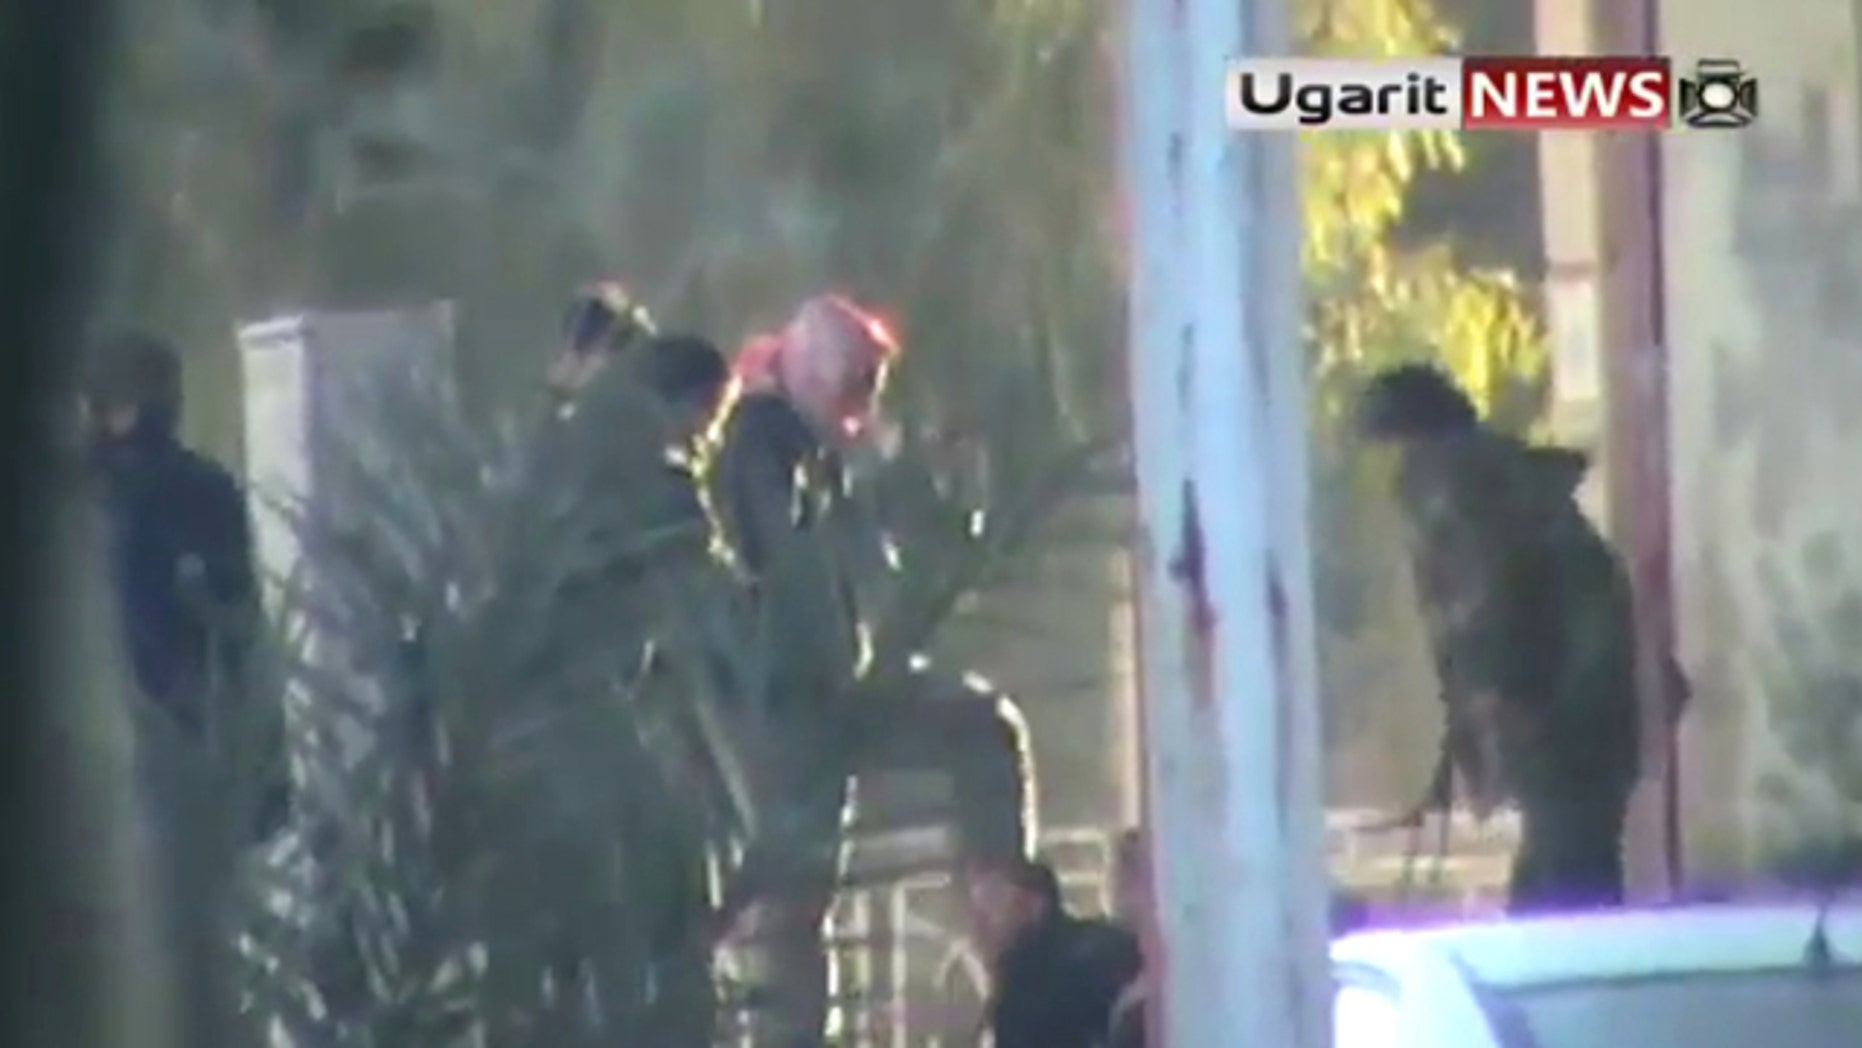 Dec. 12: This image from amateur video made available by the Ugarit News group purports to show a man being kicked by a group of soldiers in Hama, Syria.